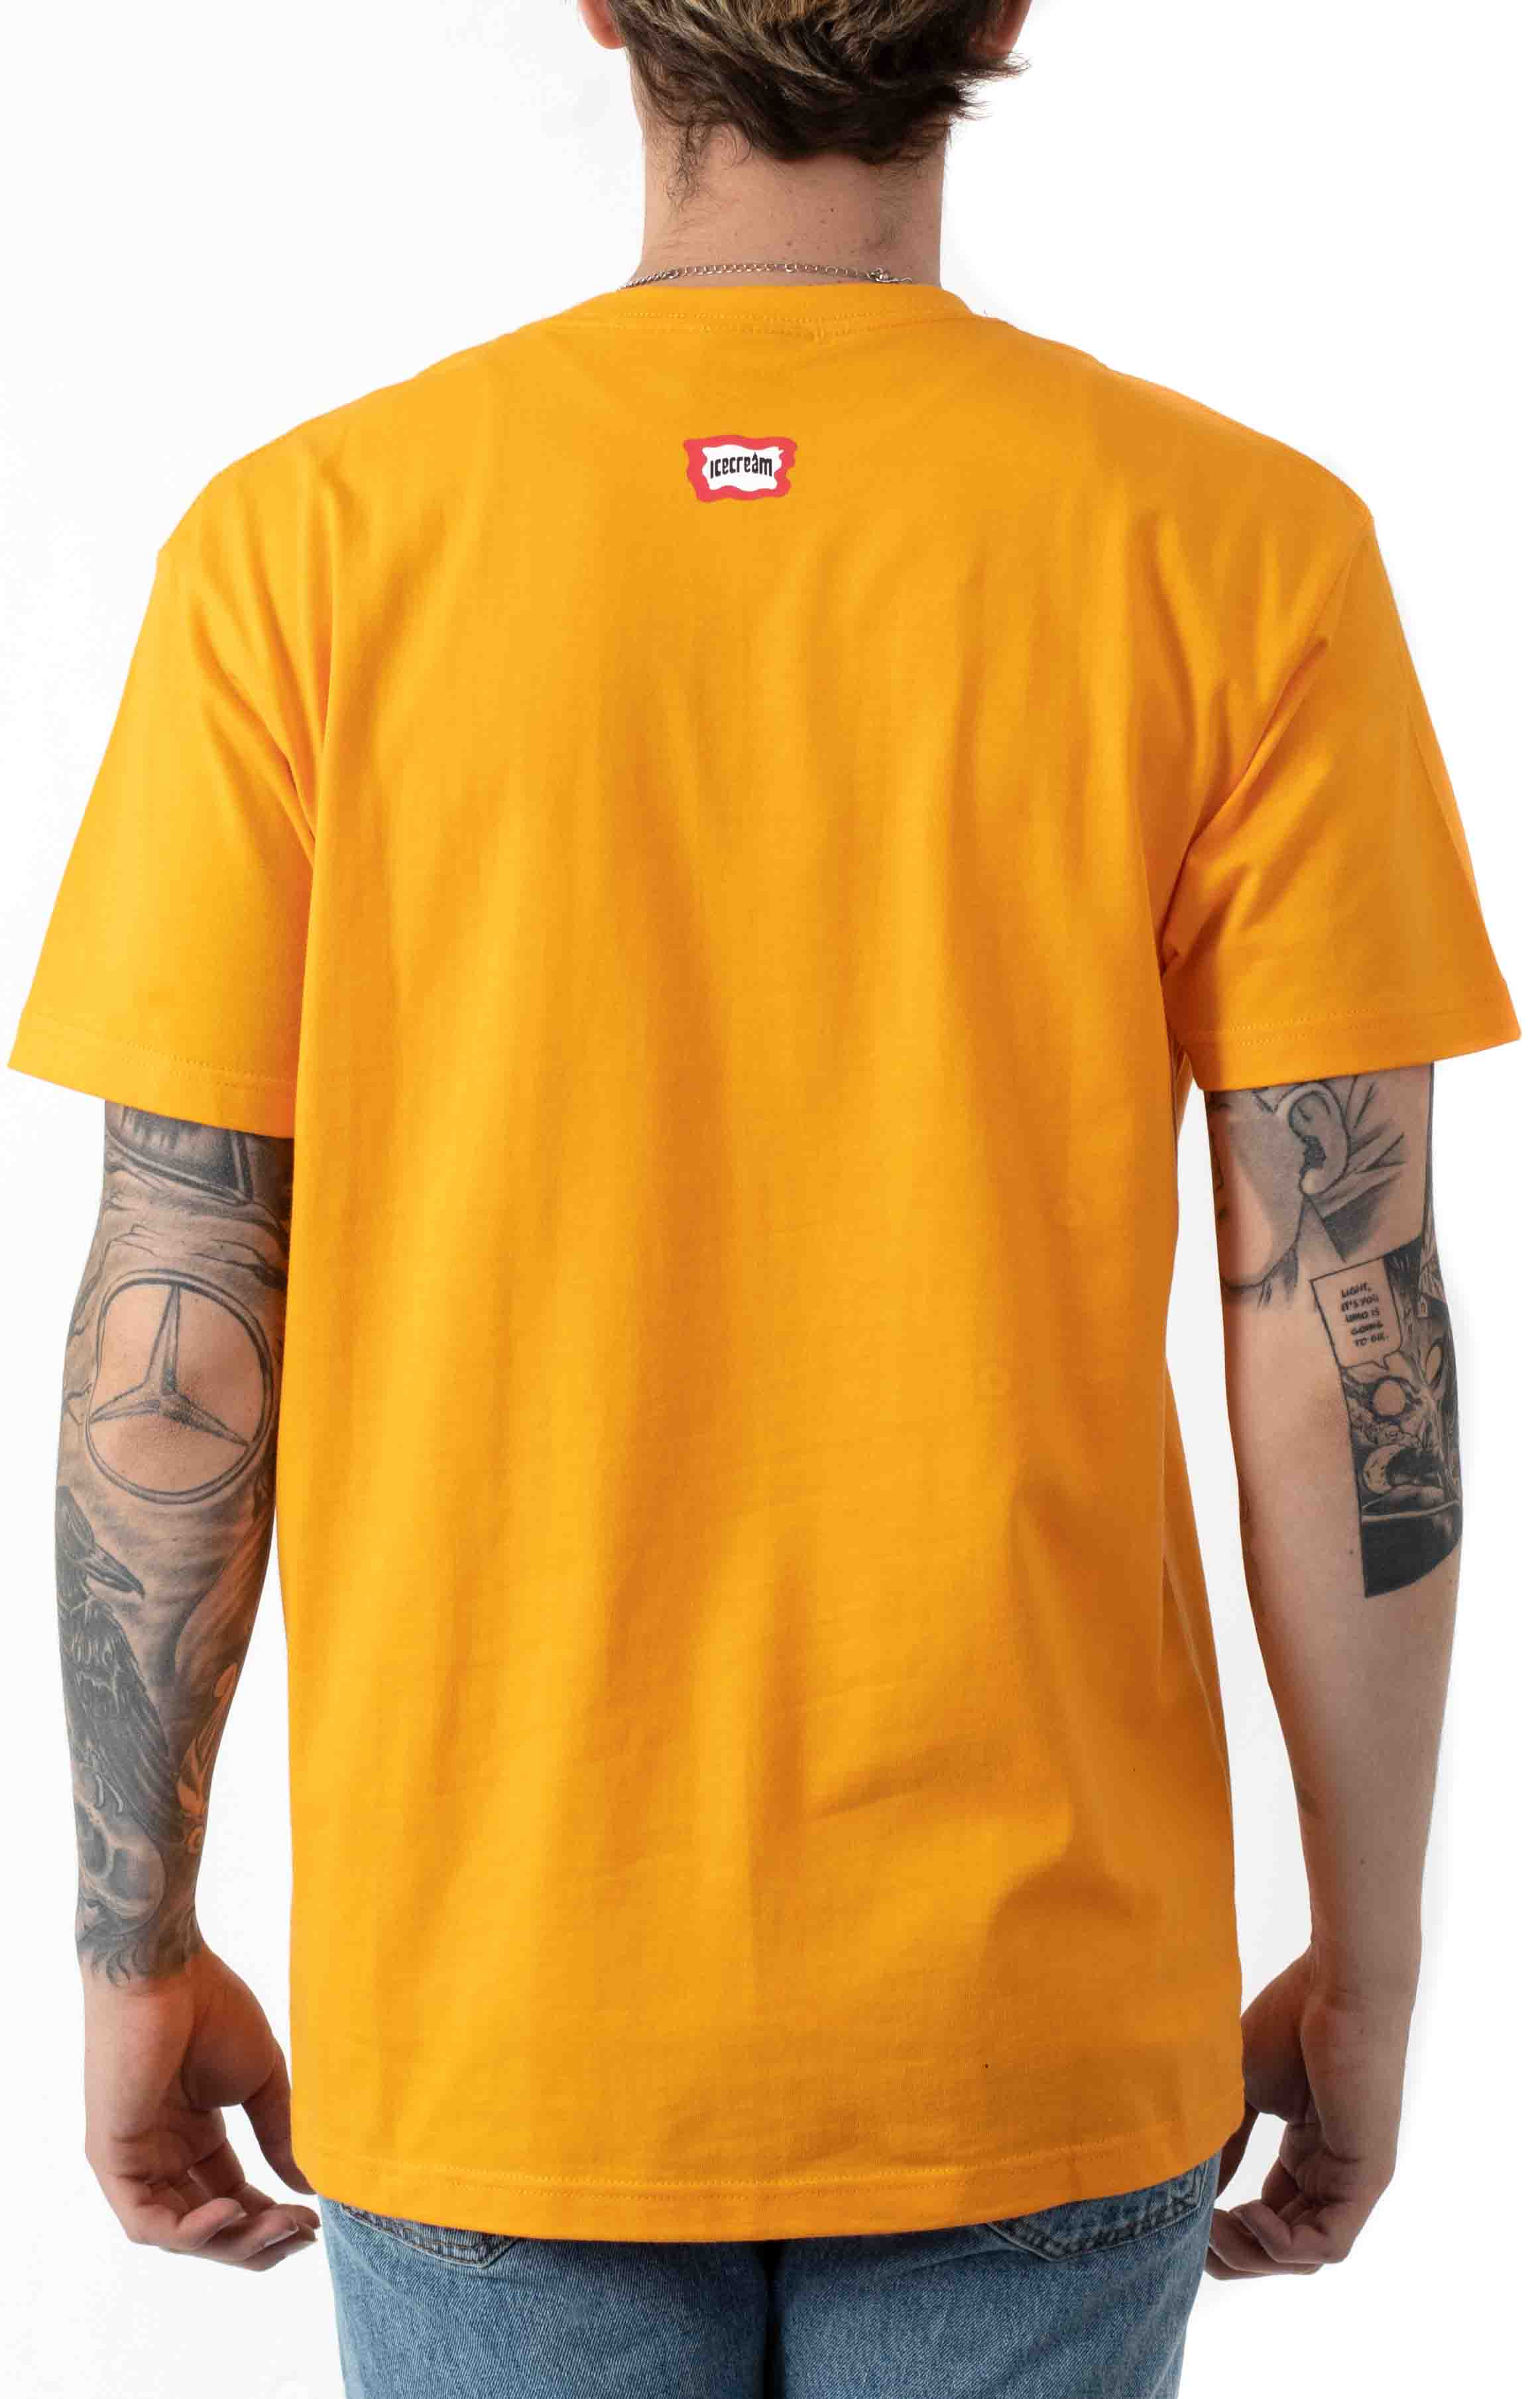 Fossil Fuel T-Shirt - Radiant Yellow  3